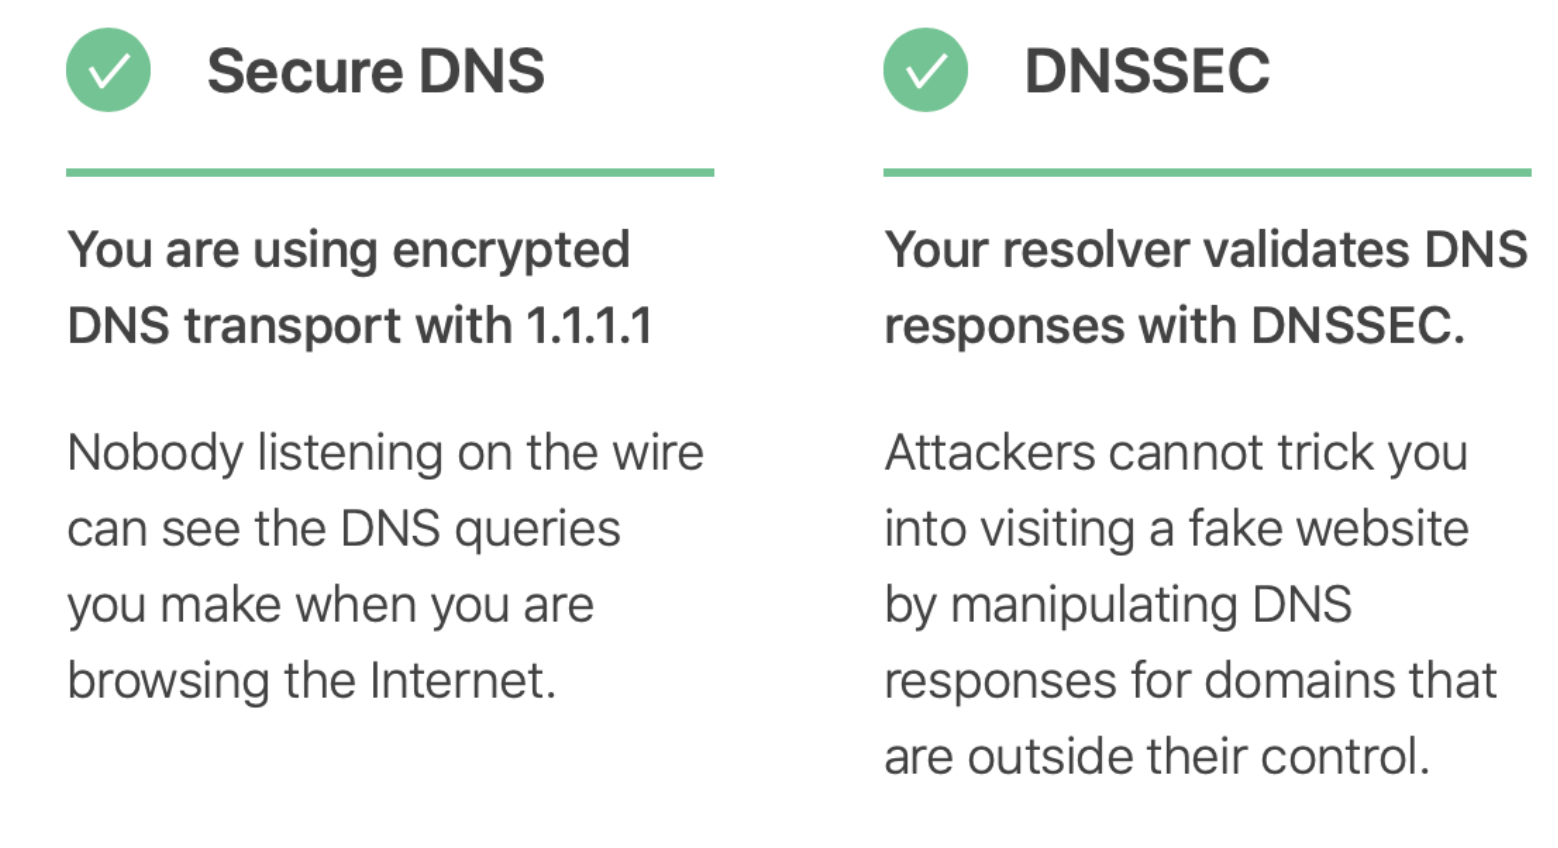 DNS Over HTTPS Increases User Privacy And Security By Preventing Eavesdropping And Manipulation